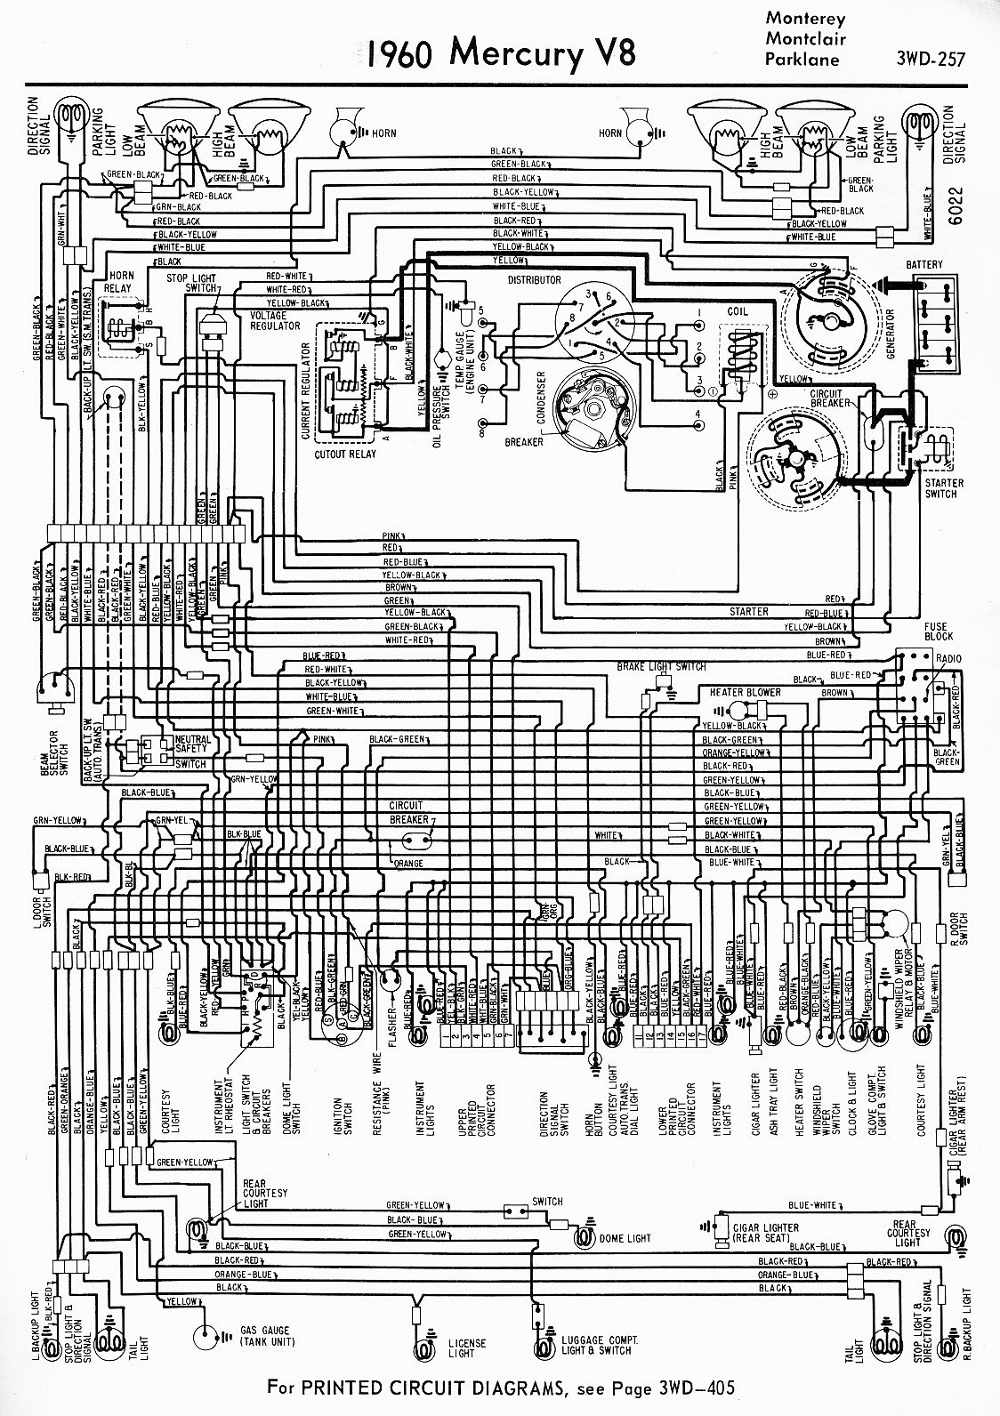 1967-1971 FORD THUNDERBIRD OVERSIZED WIRING DIAGRAMS SCHEMATICS MANUAL SHEETS